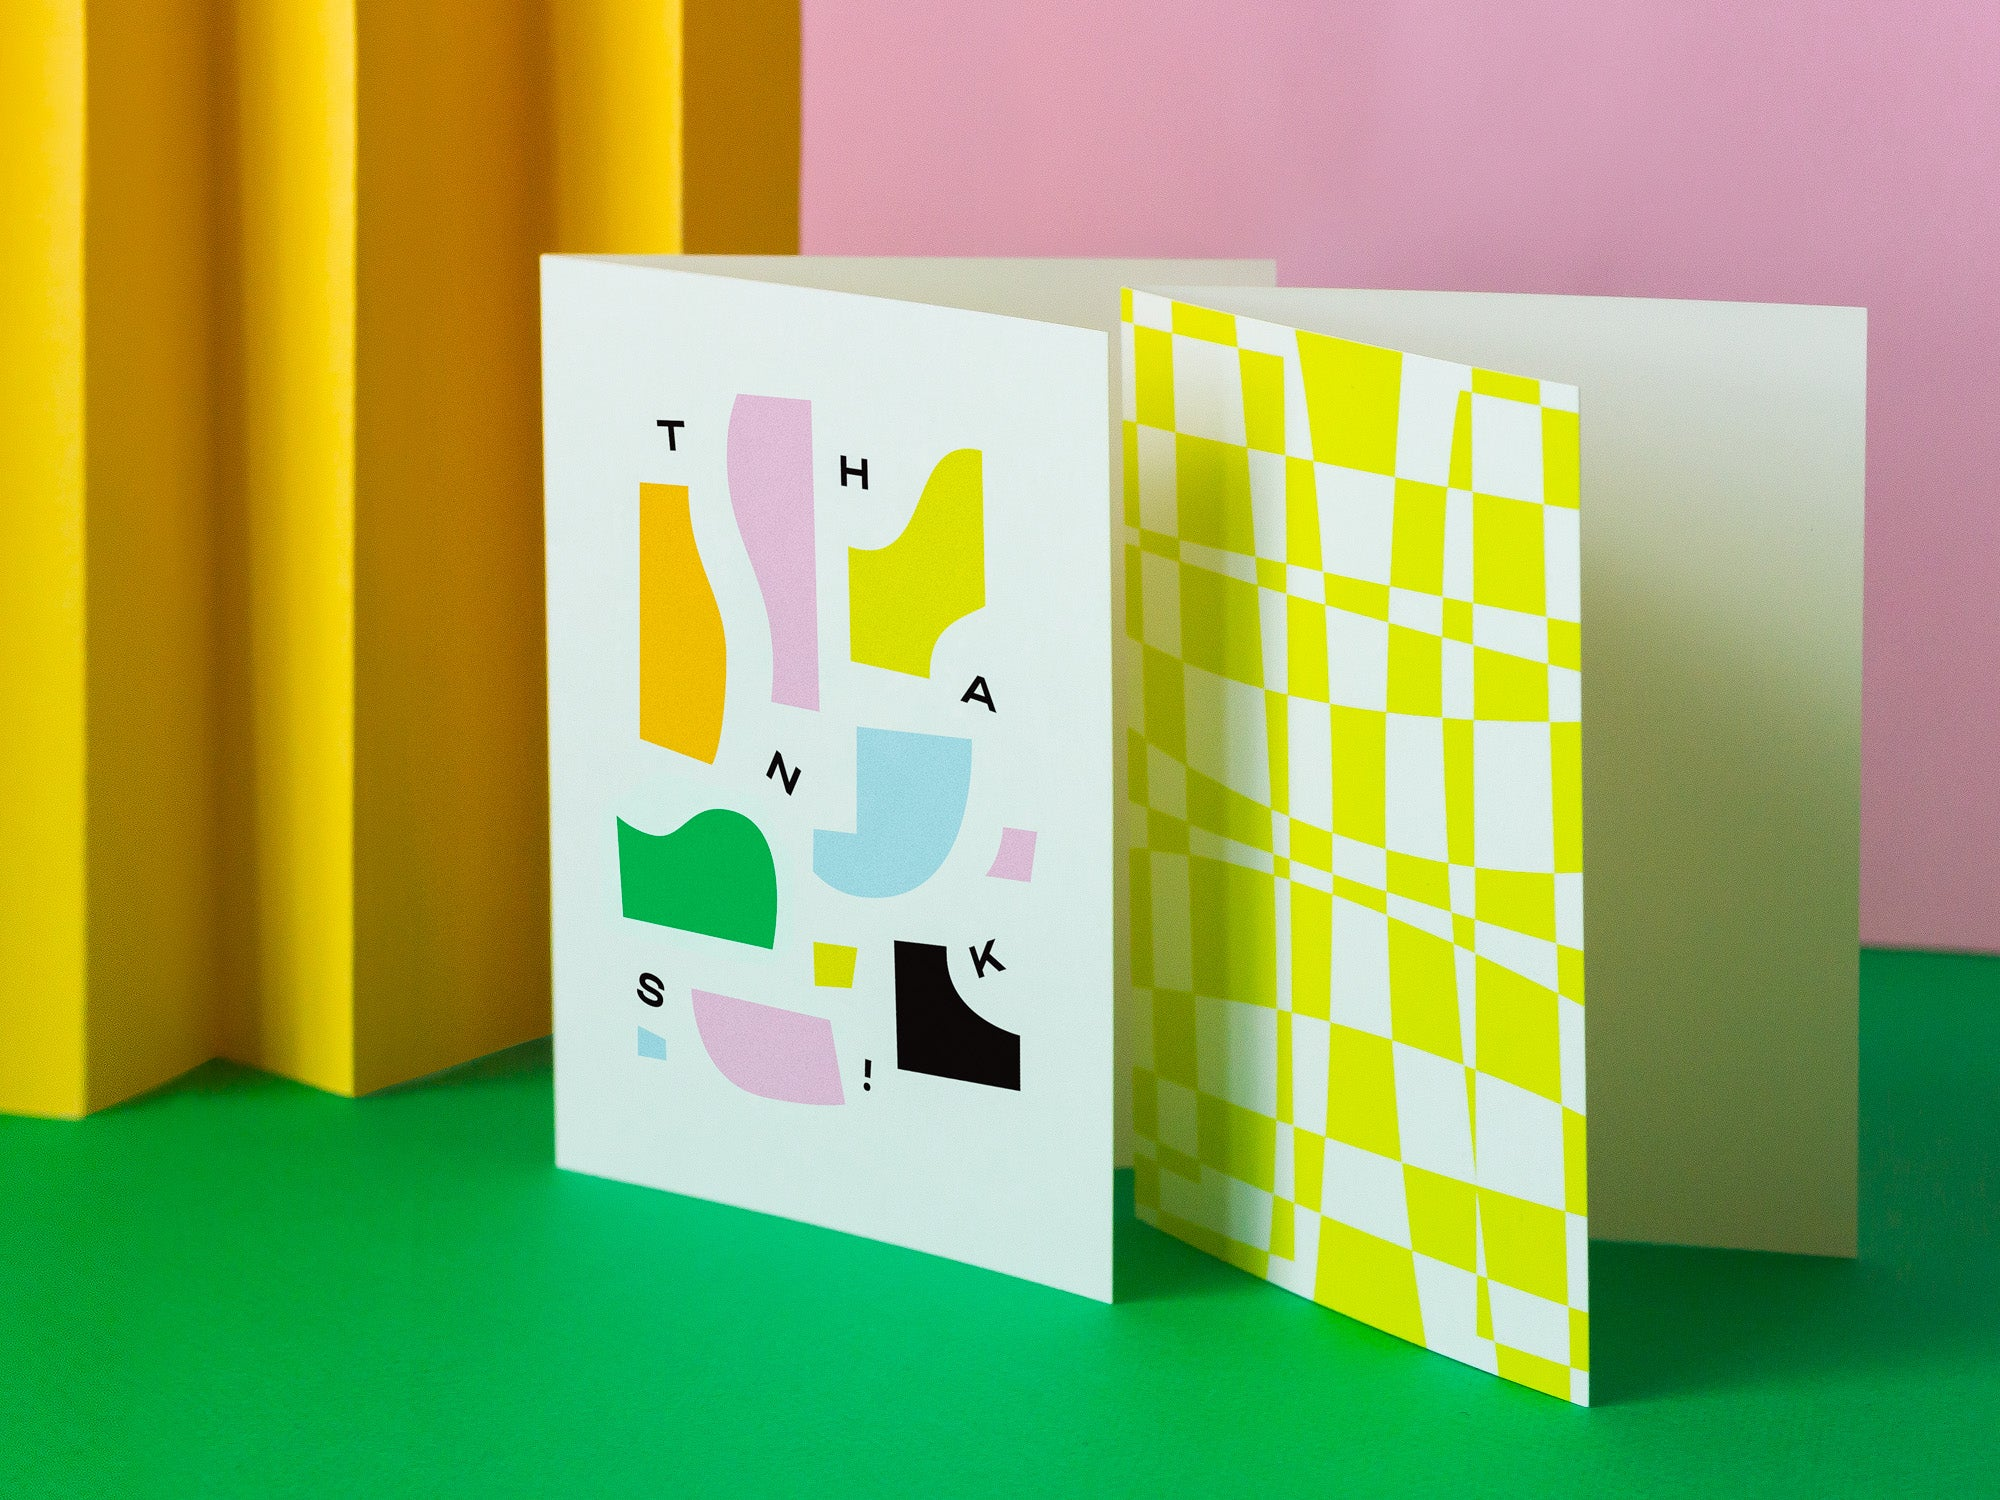 Abstract pieces thanks card and yellow mod / op art space time check pattern. Made in USA by My Darlin' @mydarlin_bk